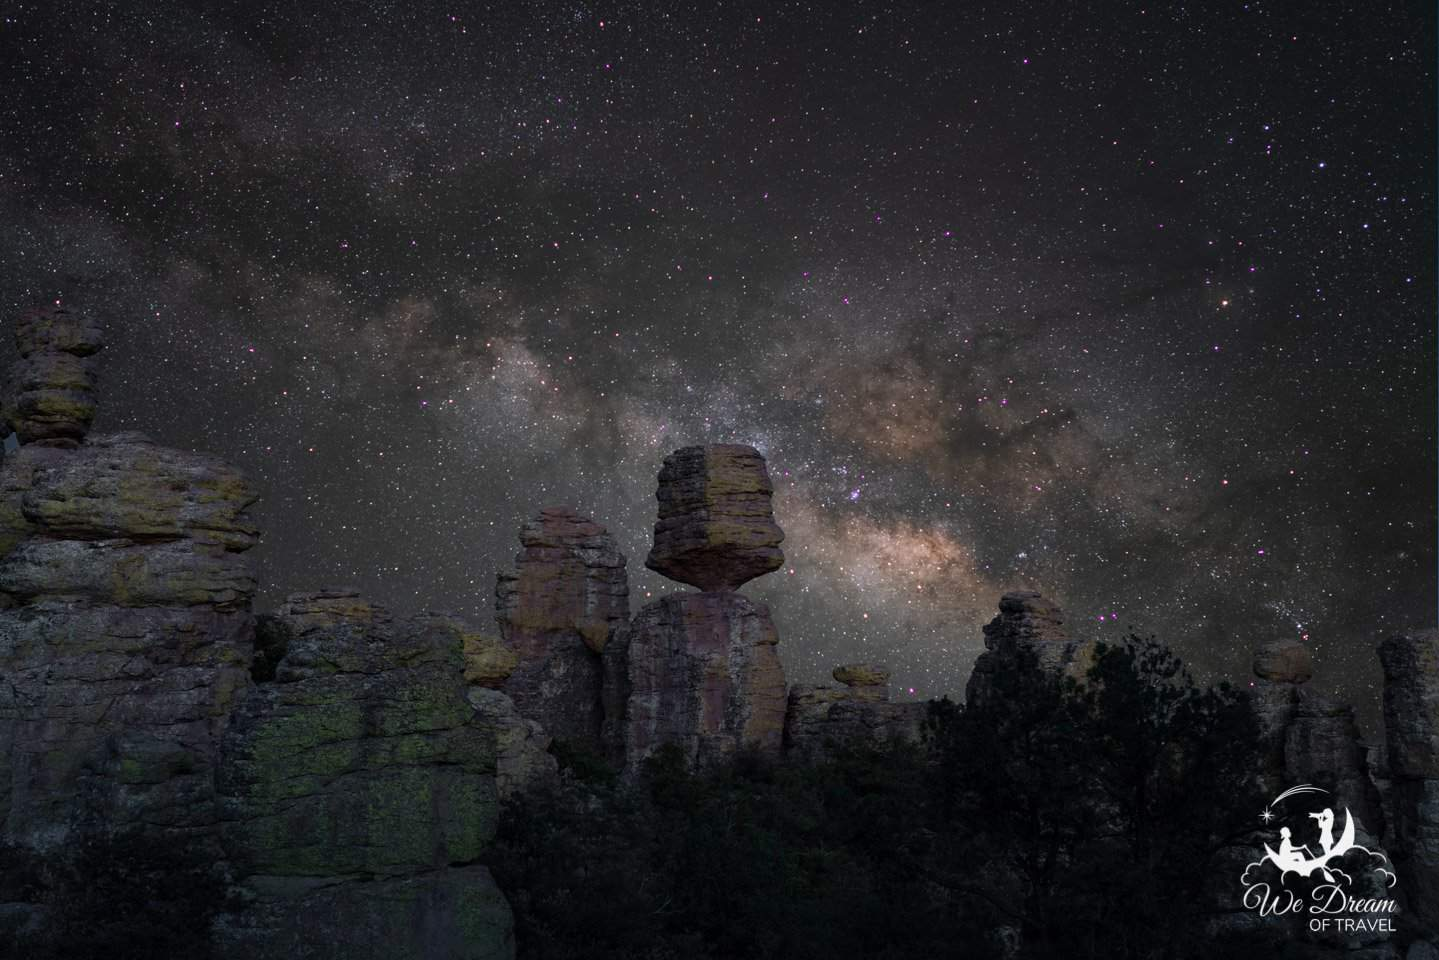 Big Balanced Rock teeters in the foreground with Milky Way rising behind.